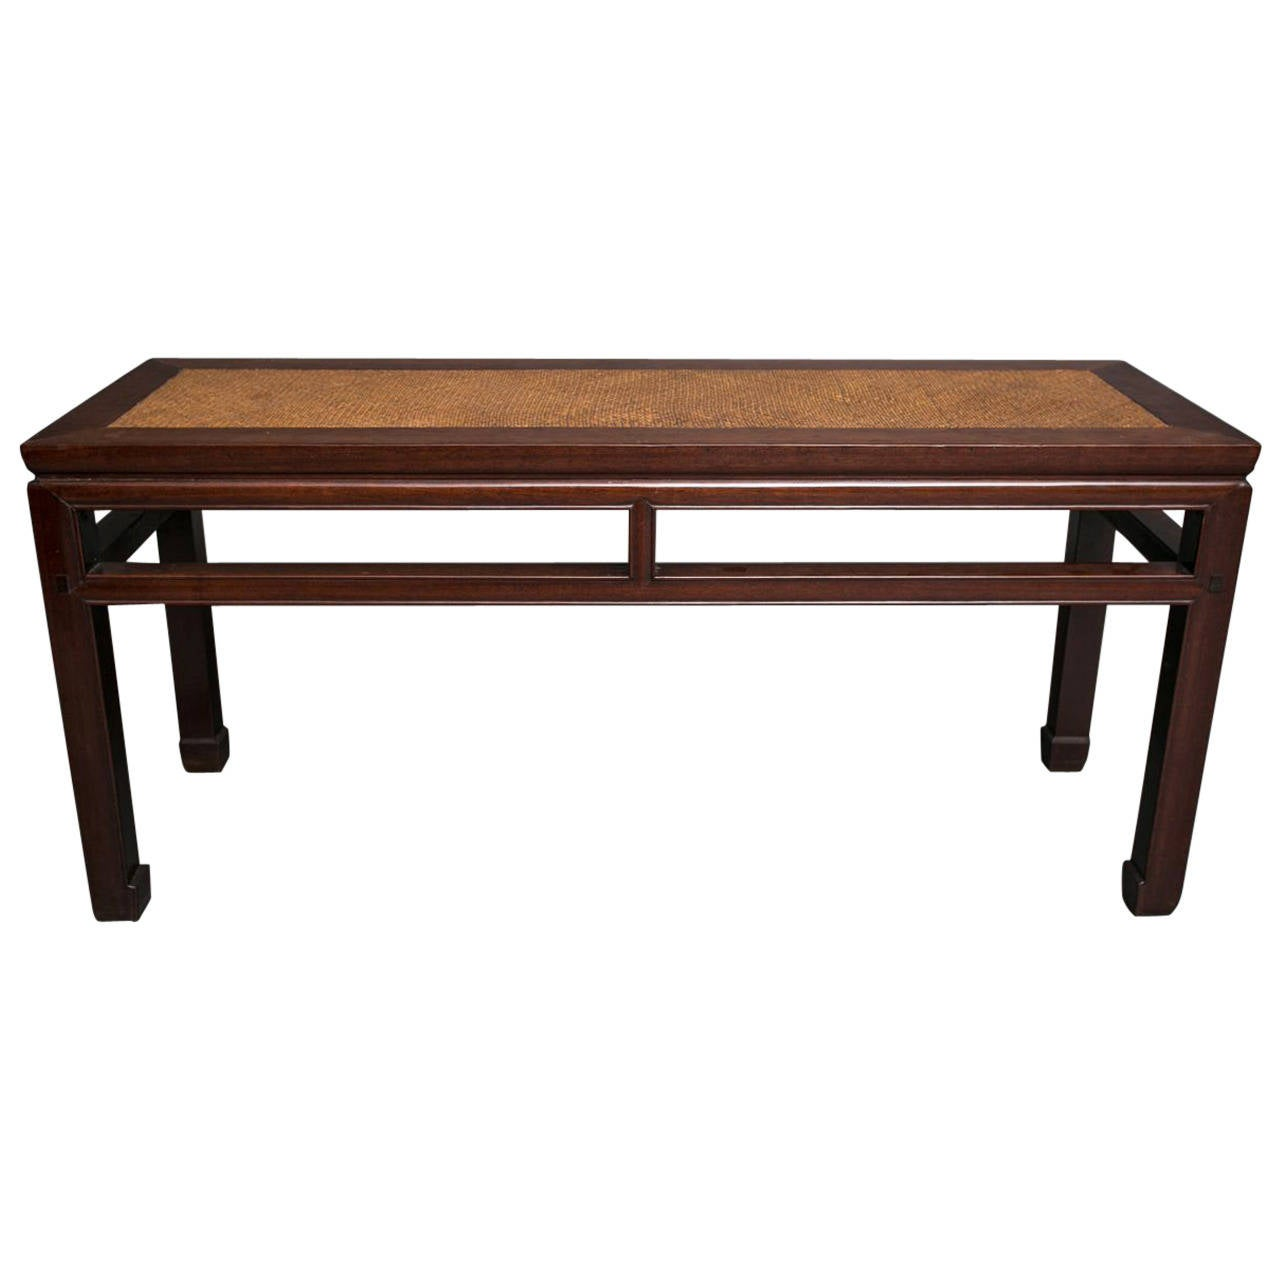 Wayfair writing table